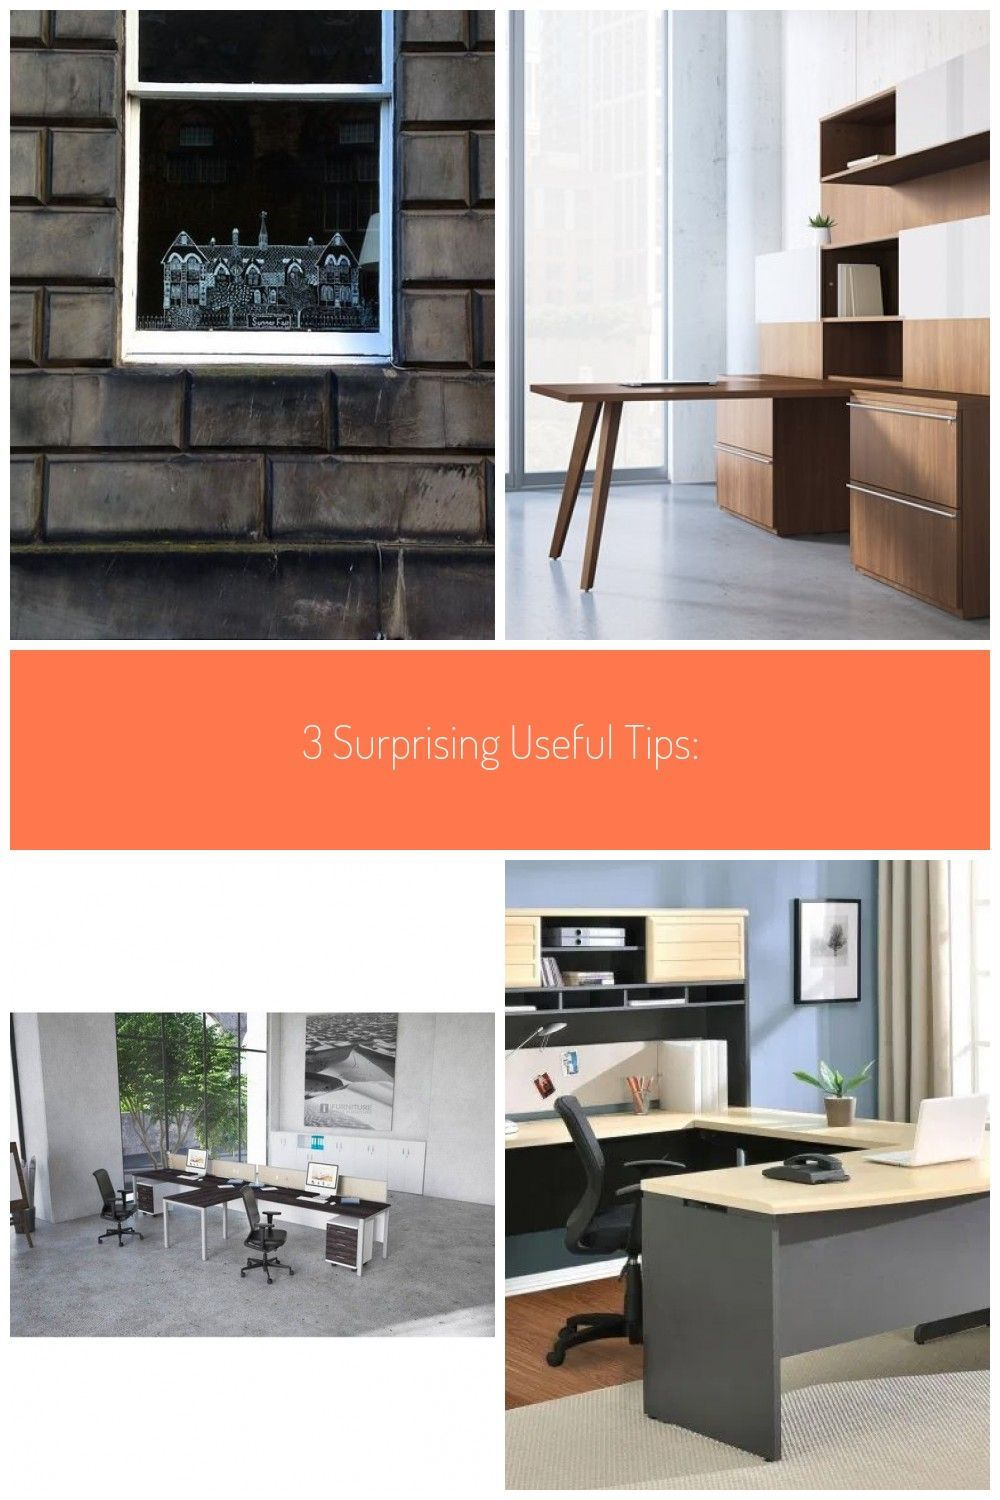 3 Surprising Useful Tips Smart Office Furniture Best Outdoor Furniture How To S In 2020 Best Outdoor Furniture Office Furniture Design Office Furniture